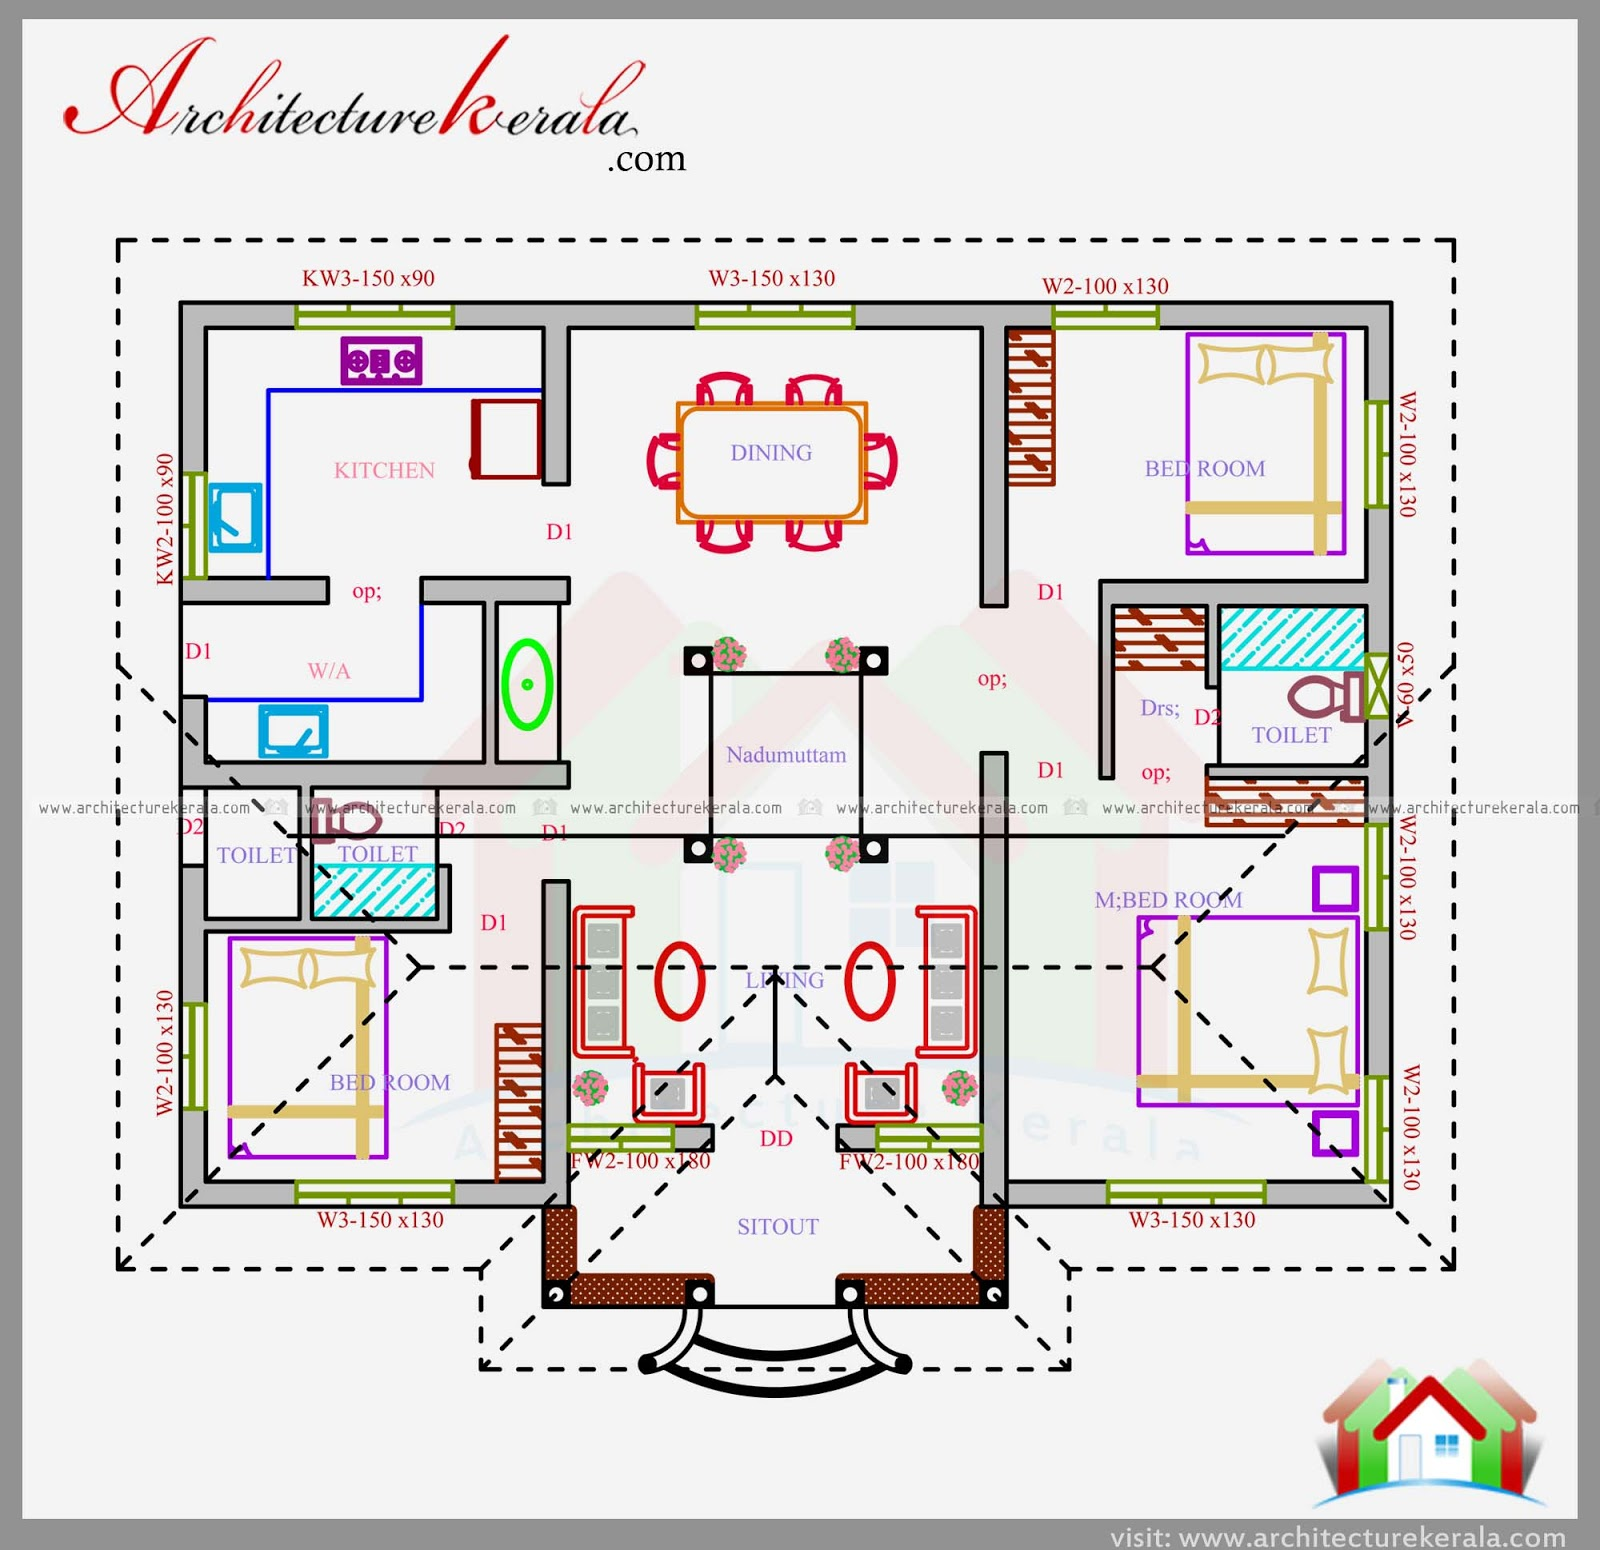 Kerala House Designs Plans Interior: 1200 SQ FT HOUSE PLAN IN NALUKETTU DESIGN